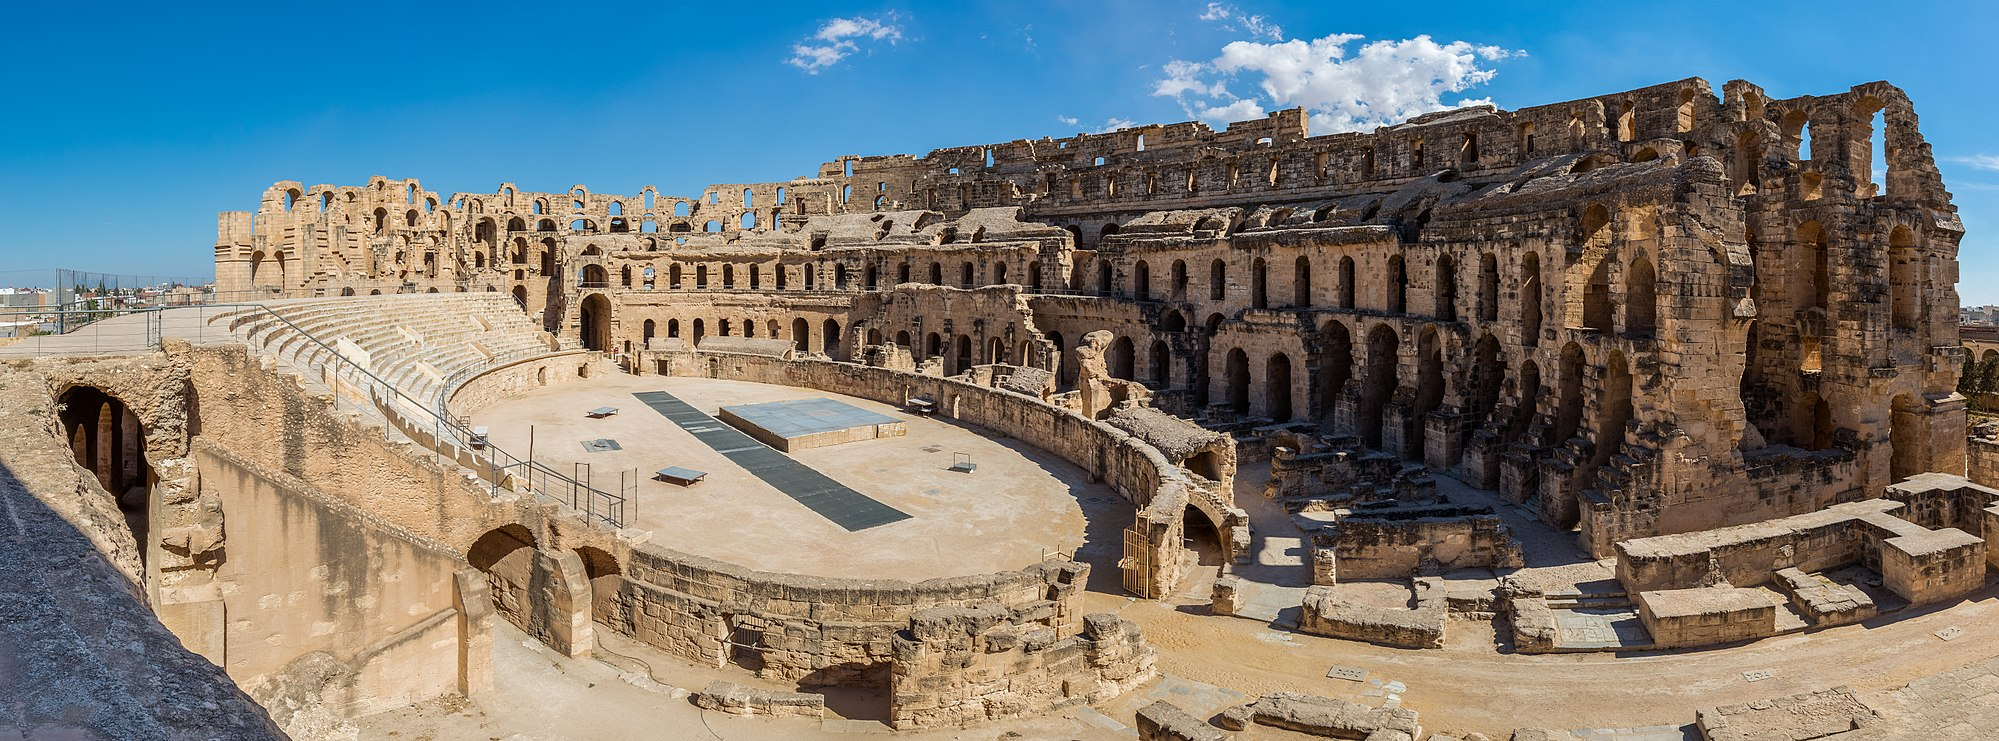 Panoramic view of the Amphitheatre of El Jem, an archeological site in the city of El Djem, Tunisia. Diego Delso CC BY-SA.